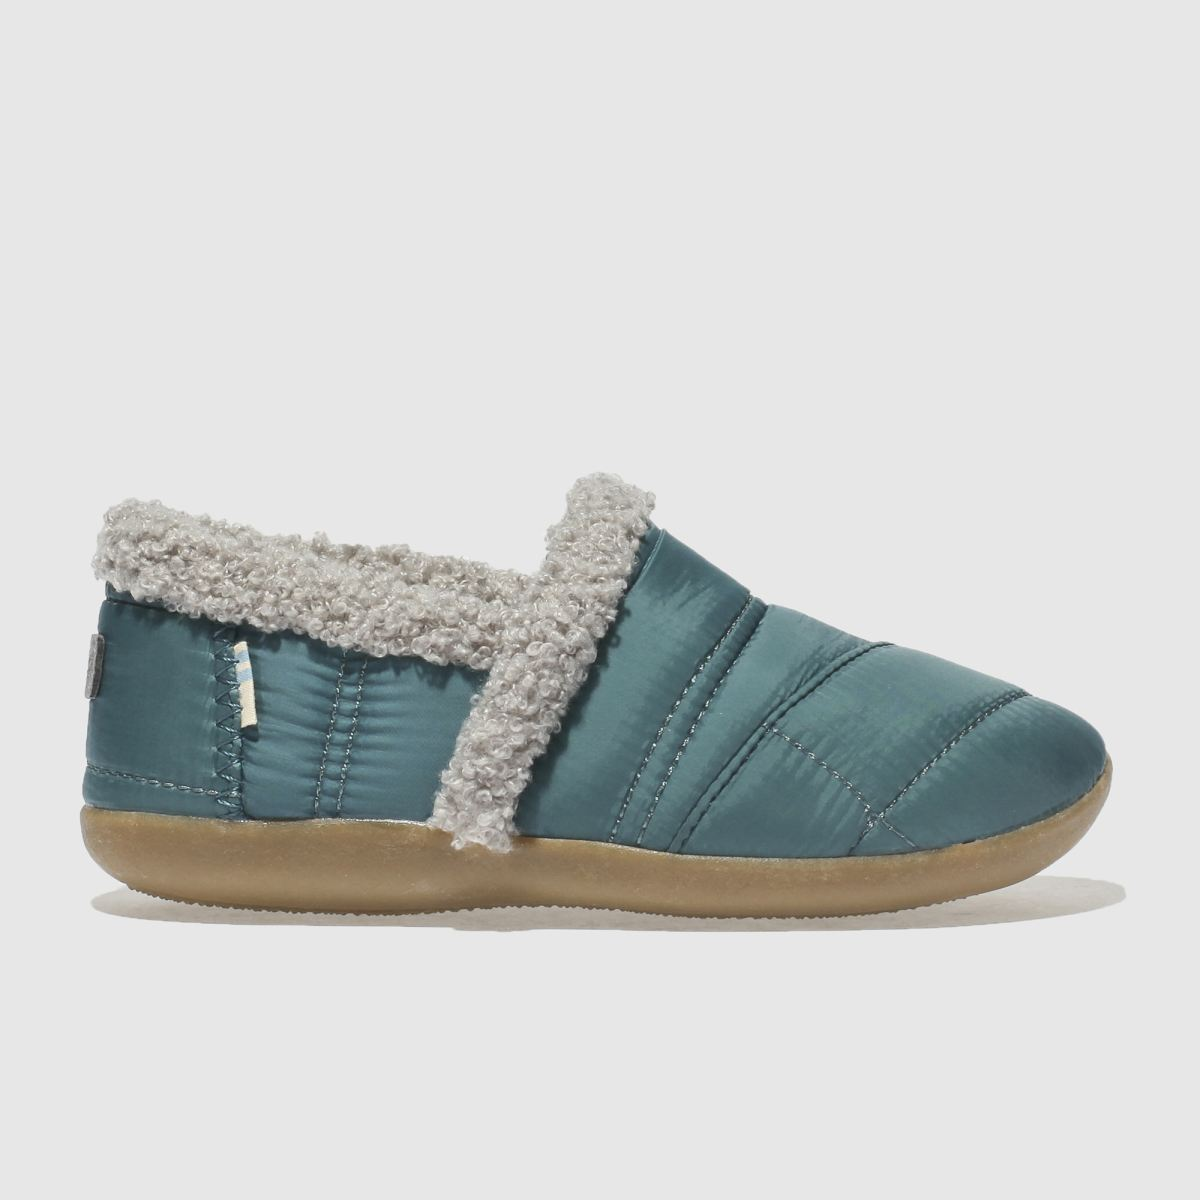 Toms Blue House Slipper Boots Junior